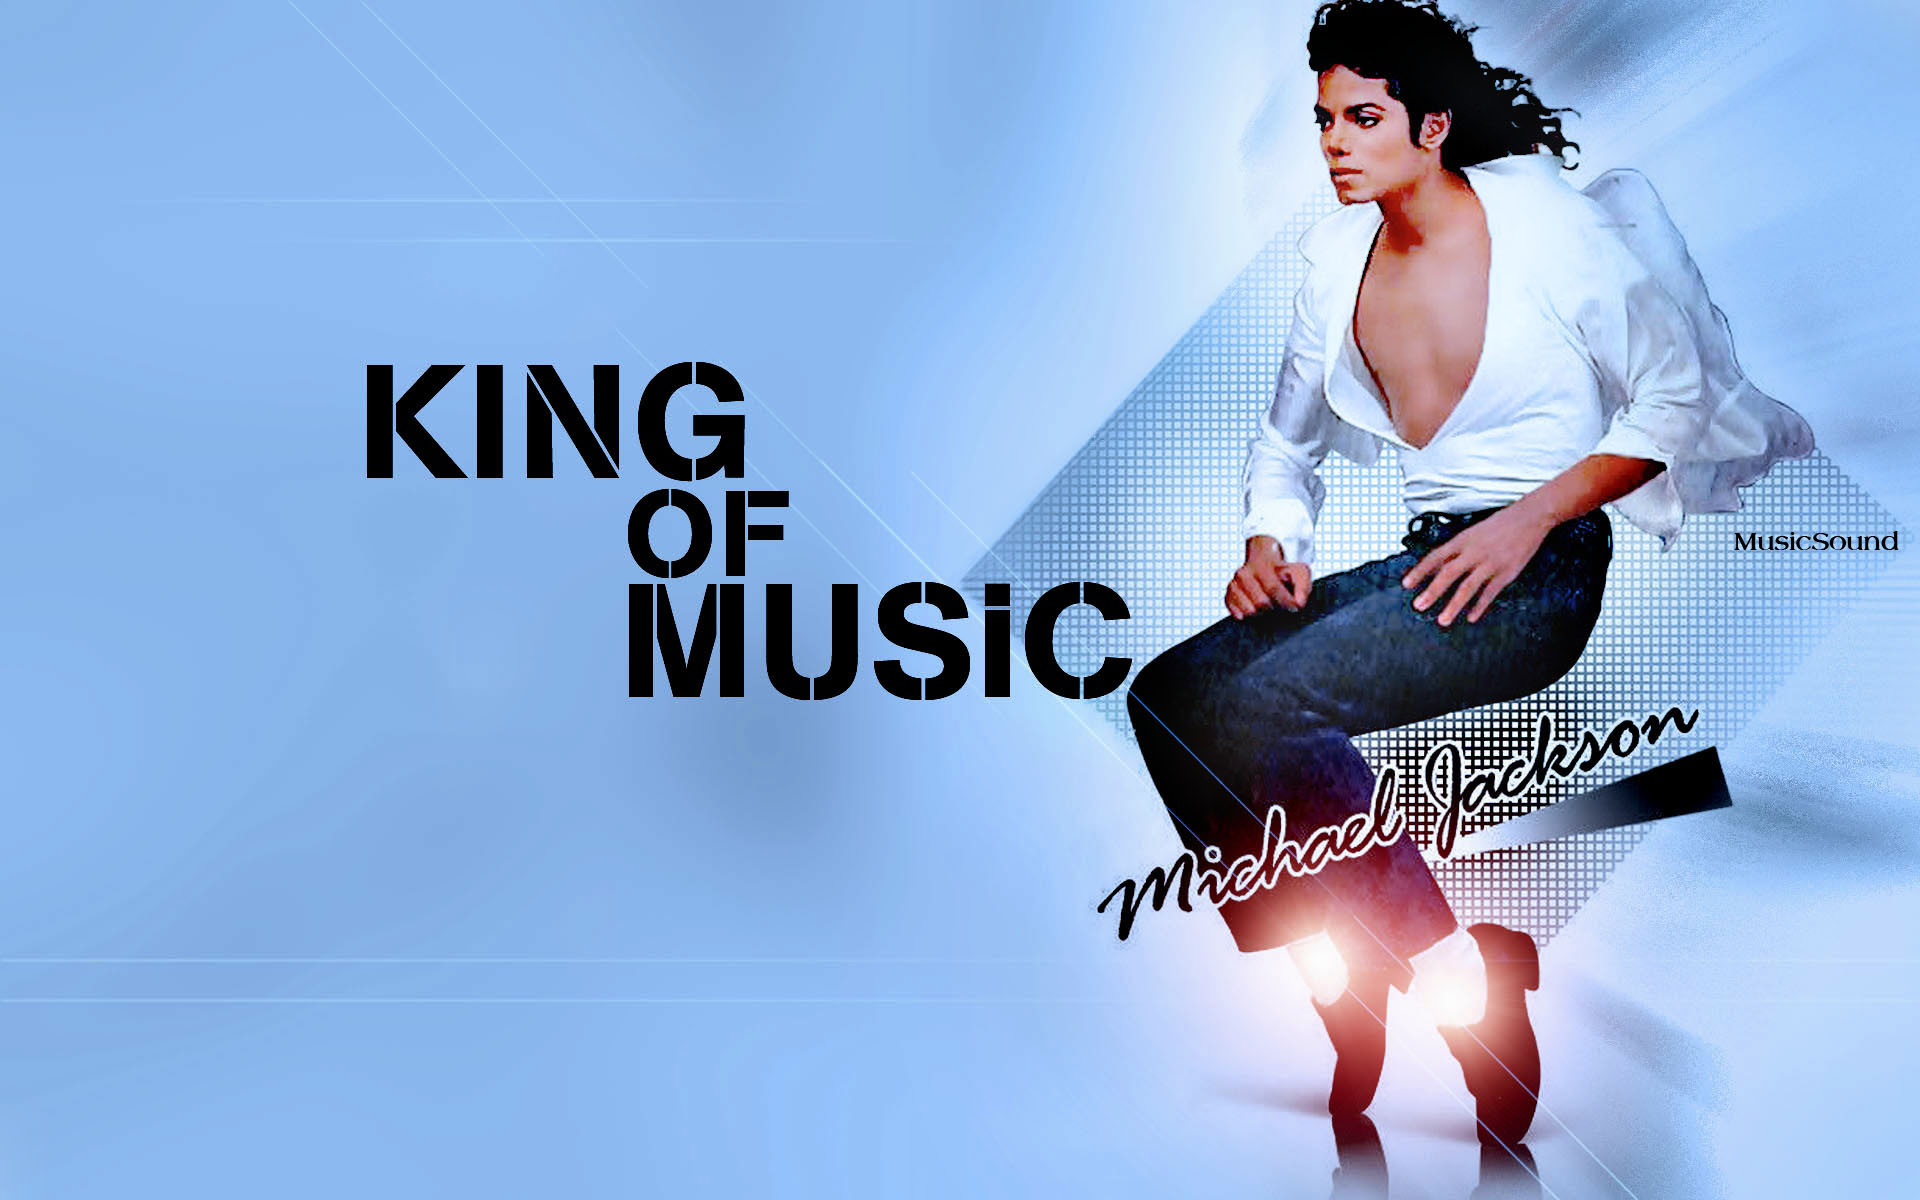 1920x1200 Michael Jackson HD Images 2 | Michael Jackson HD Images | Pinterest |  Michael jackson wallpaper, Michael jackson and Wallpaper